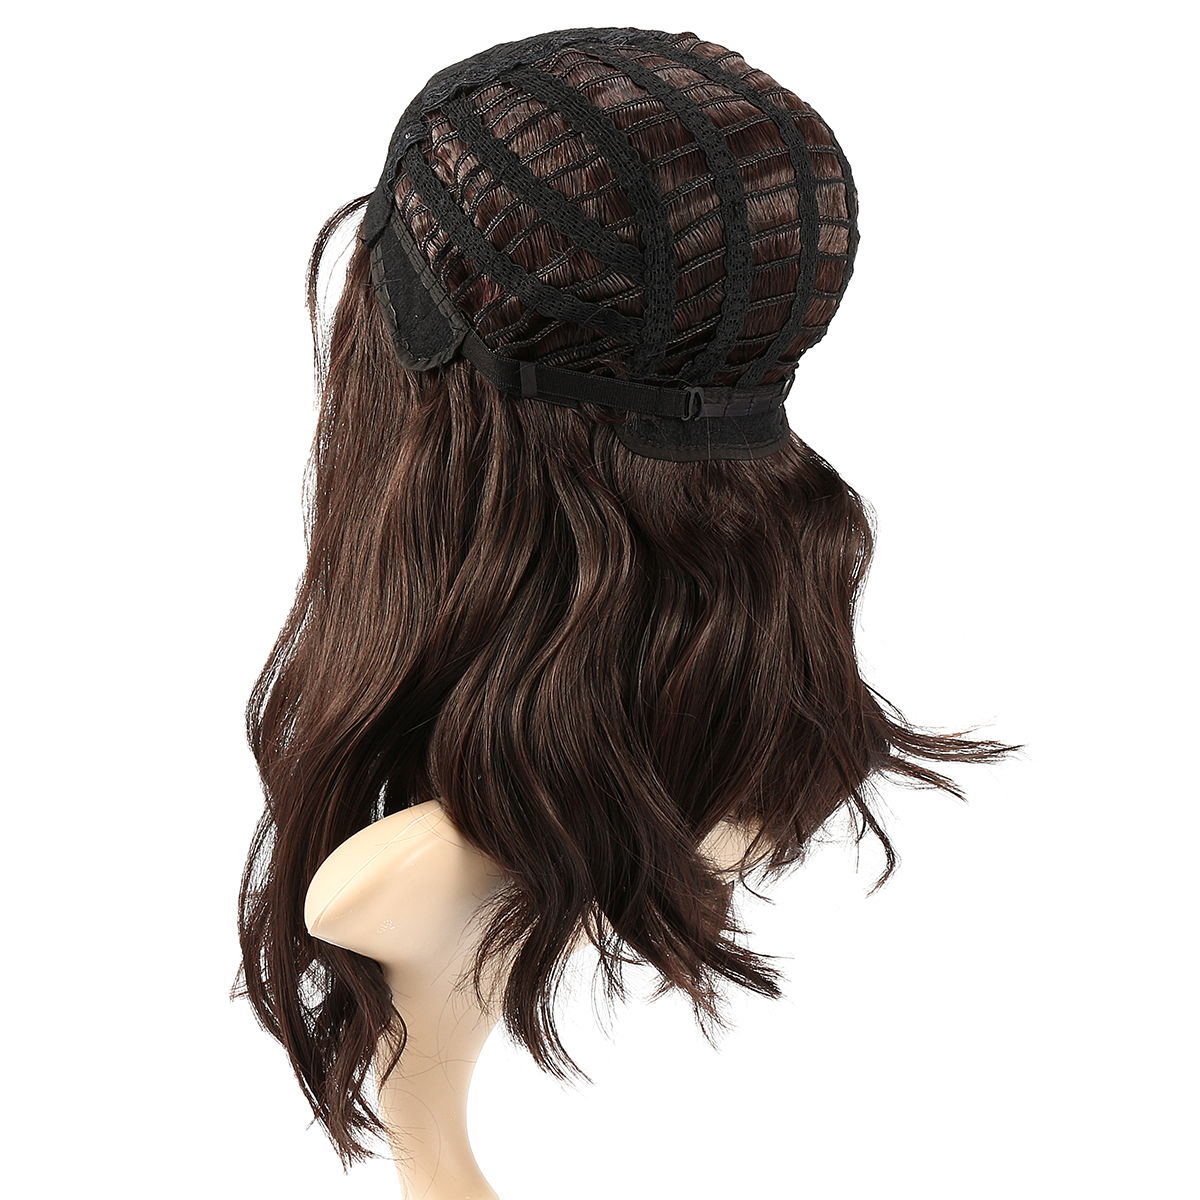 42cm Women Natural Black Curly Hair Ombre Wigs